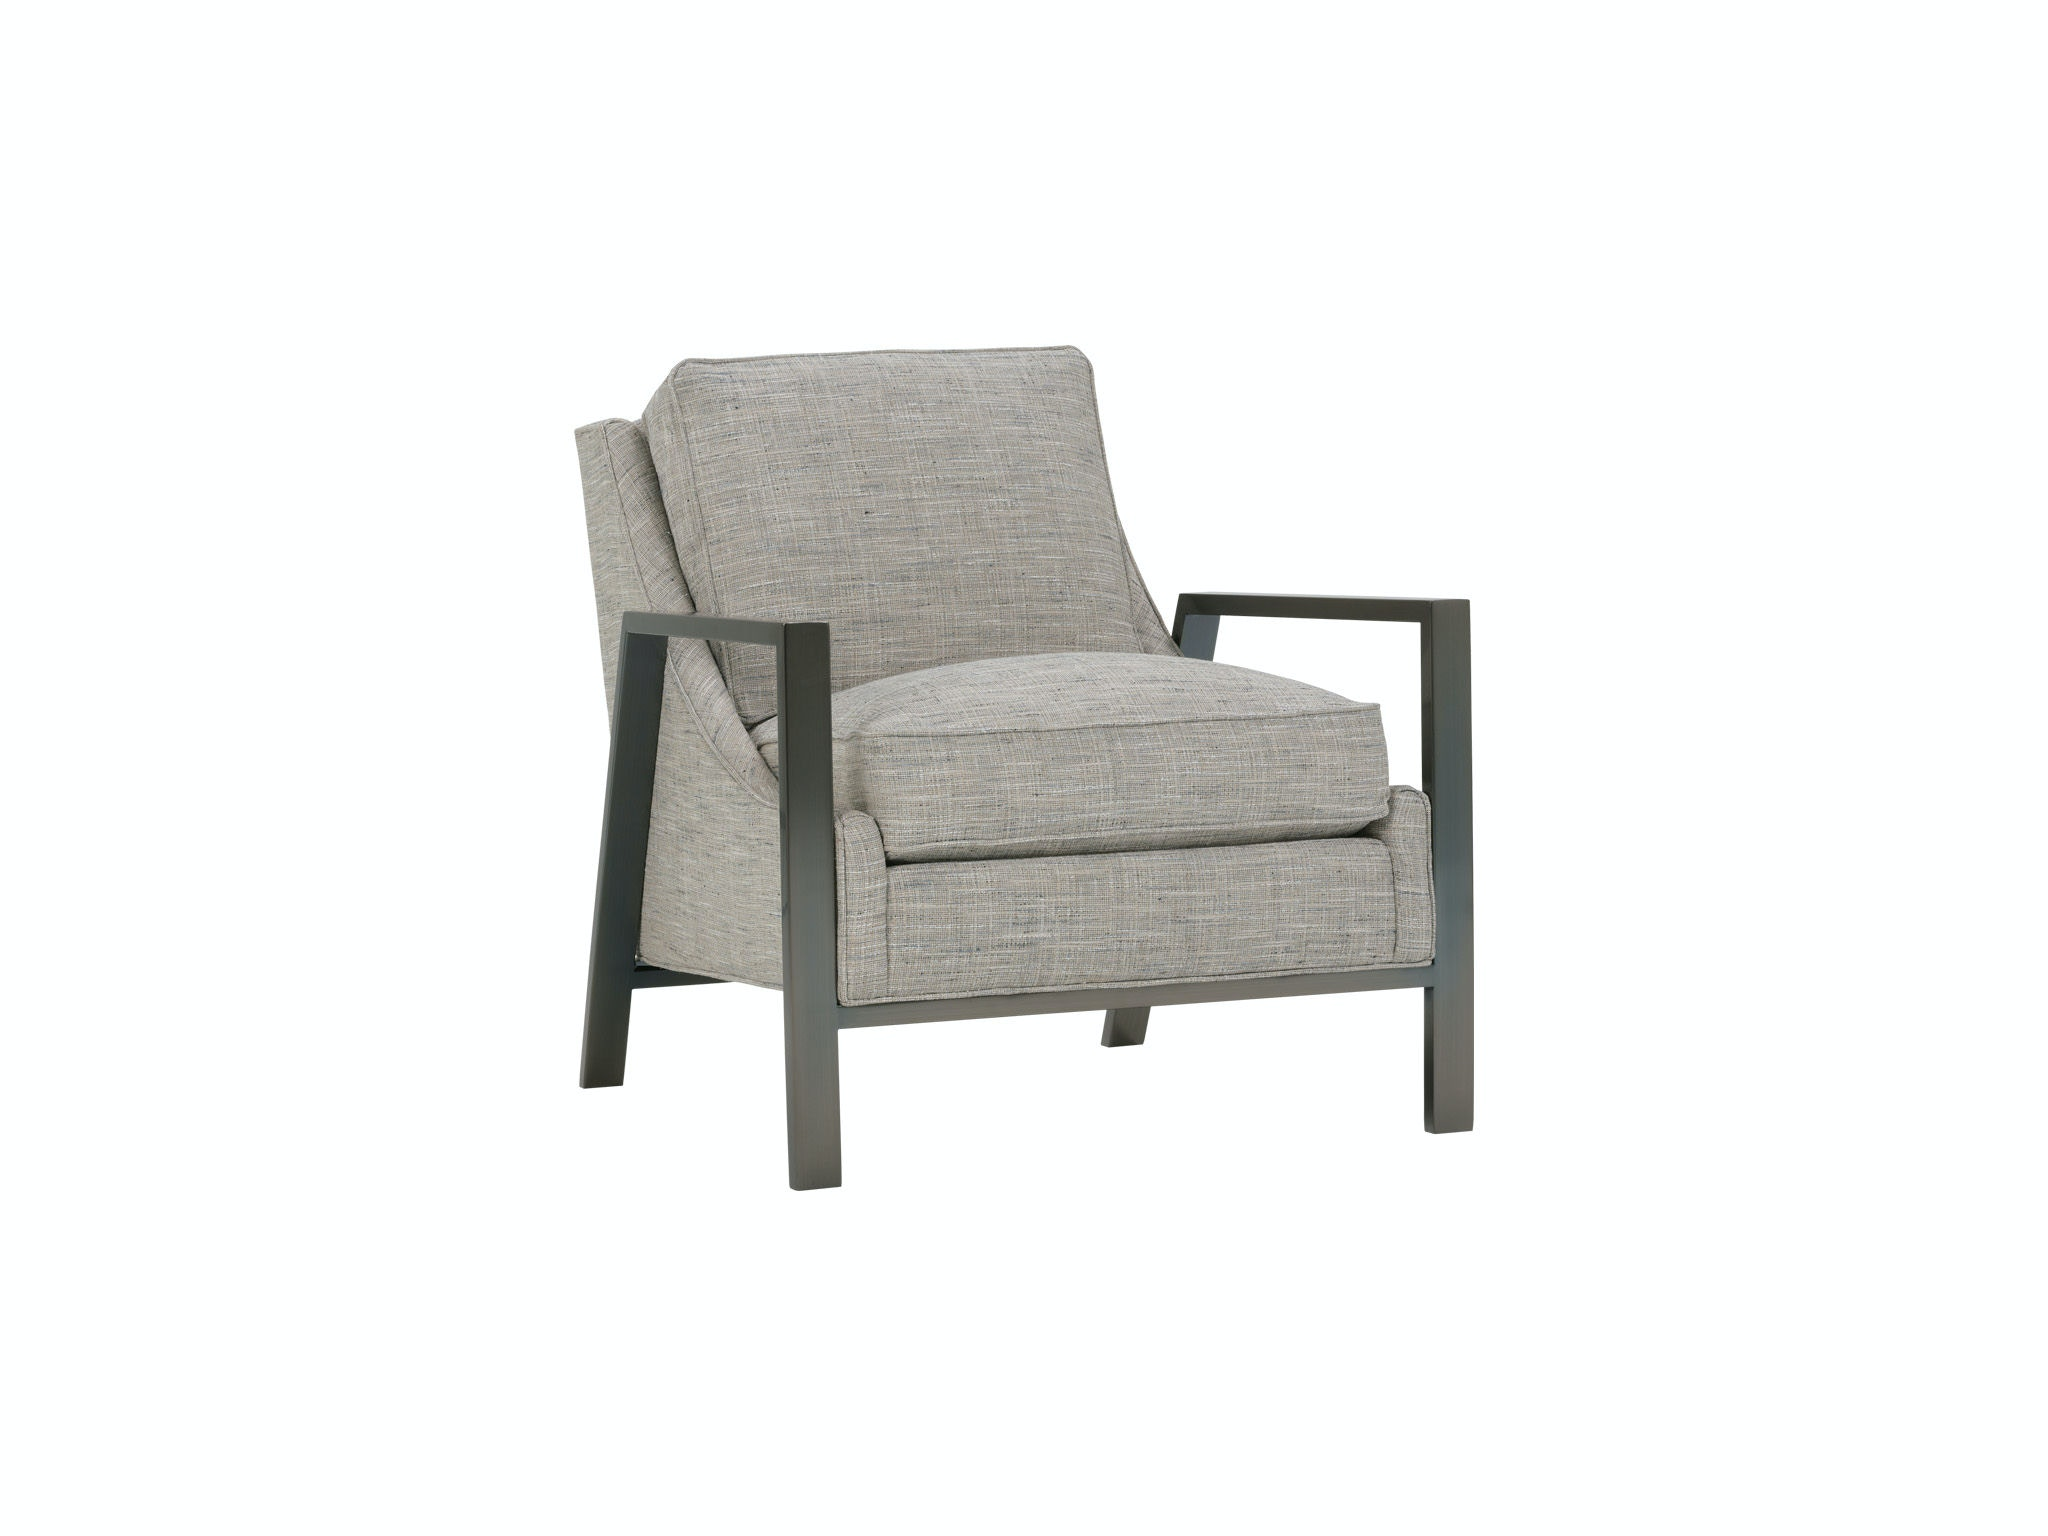 Attrayant Robin Bruce Chair ODELL B 006